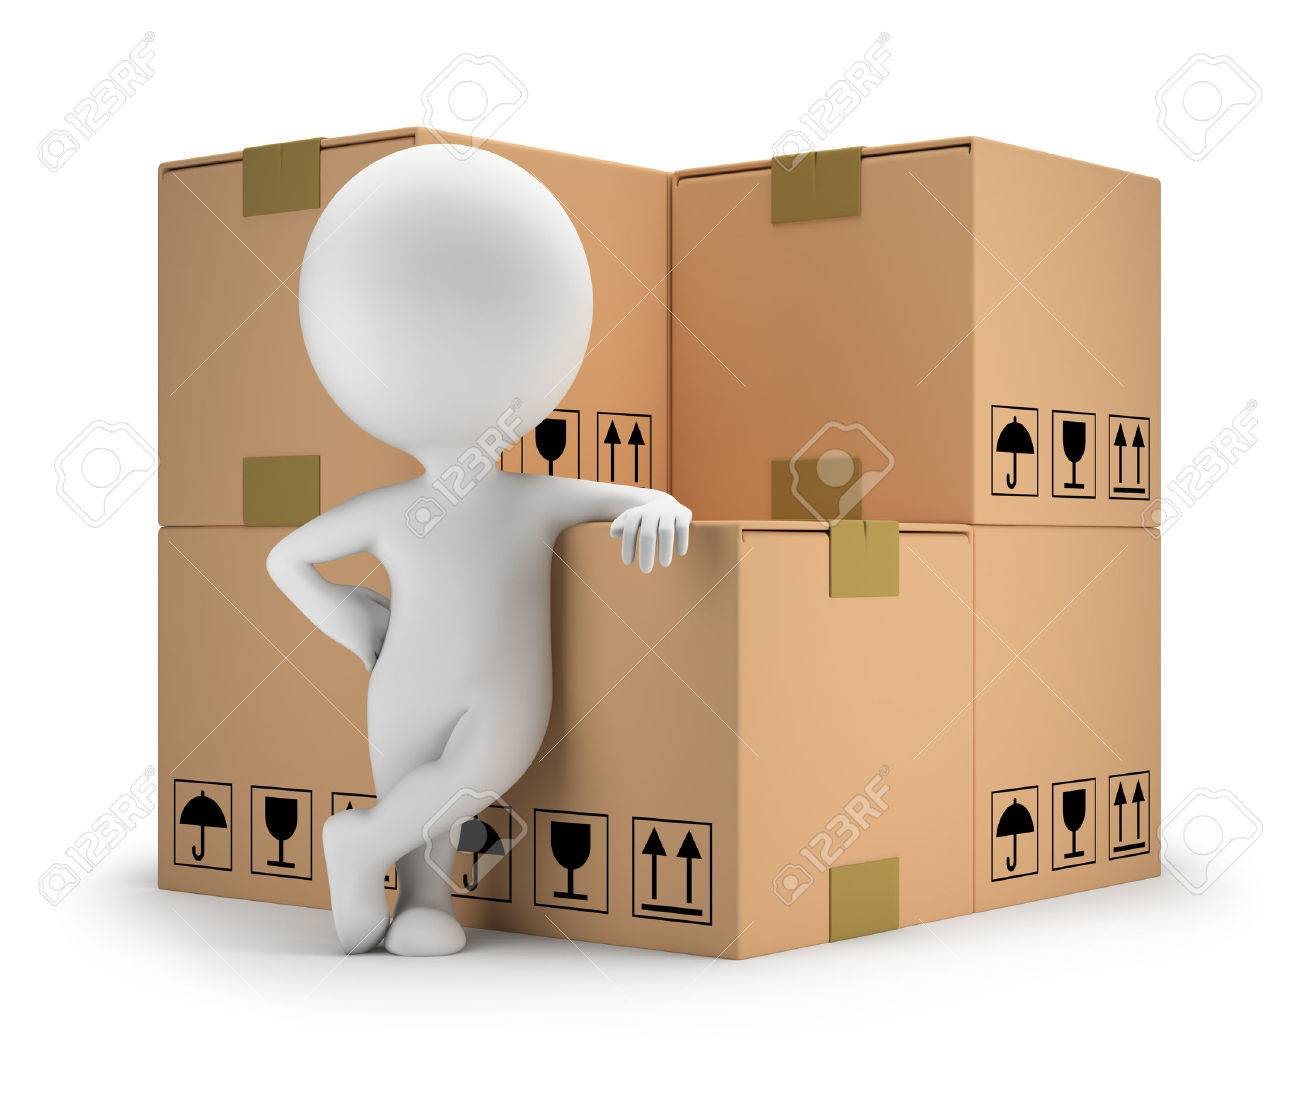 3d small person standing next to cardboard boxes 3d image White background - 26583777